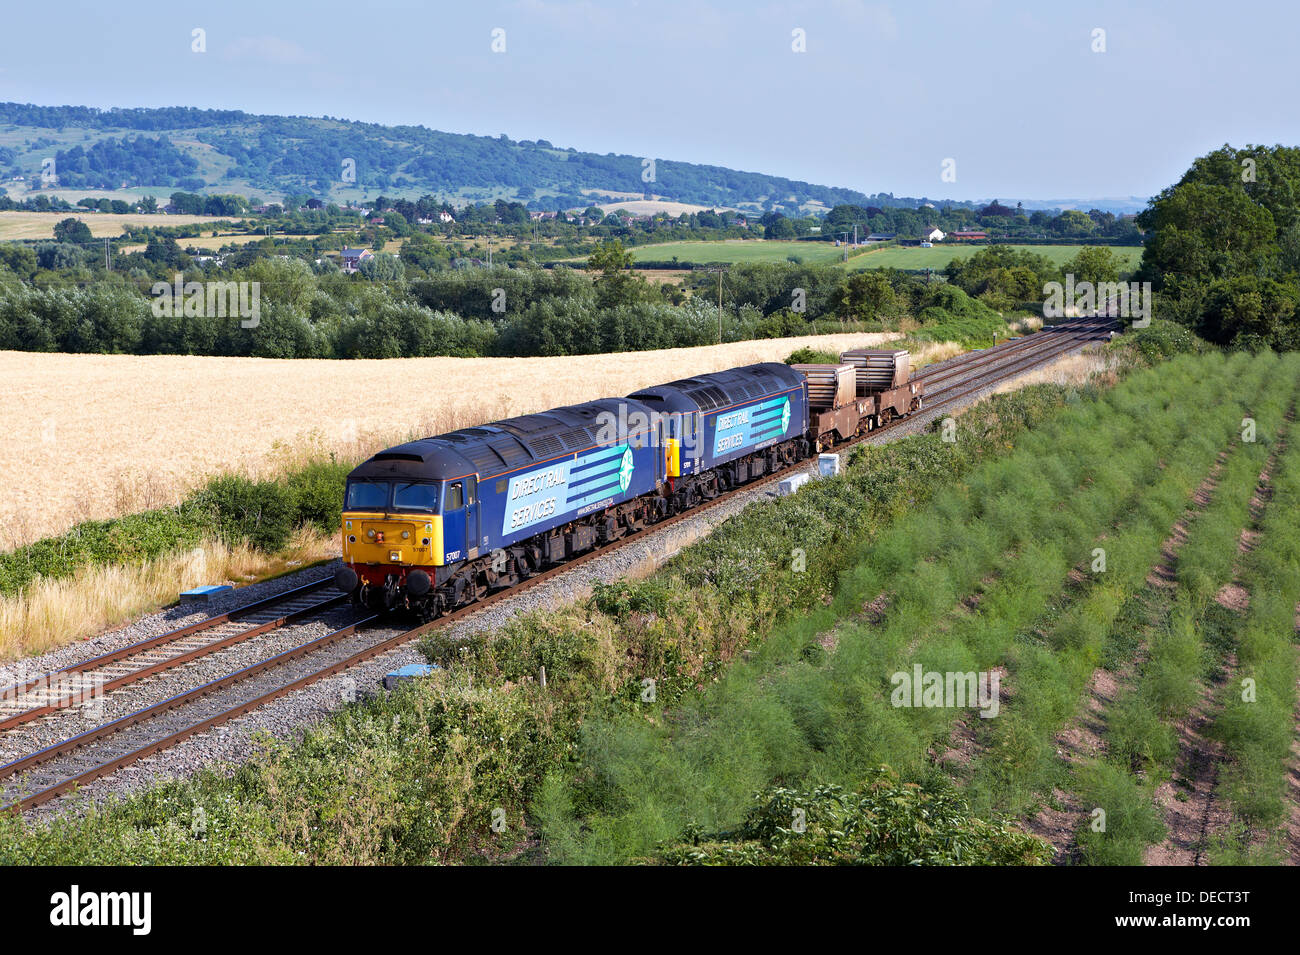 57007 & 57011 head pass Defford with 6M67 Bridgewater - Crewe Nuclear Flask on 17/07/13. - Stock Image